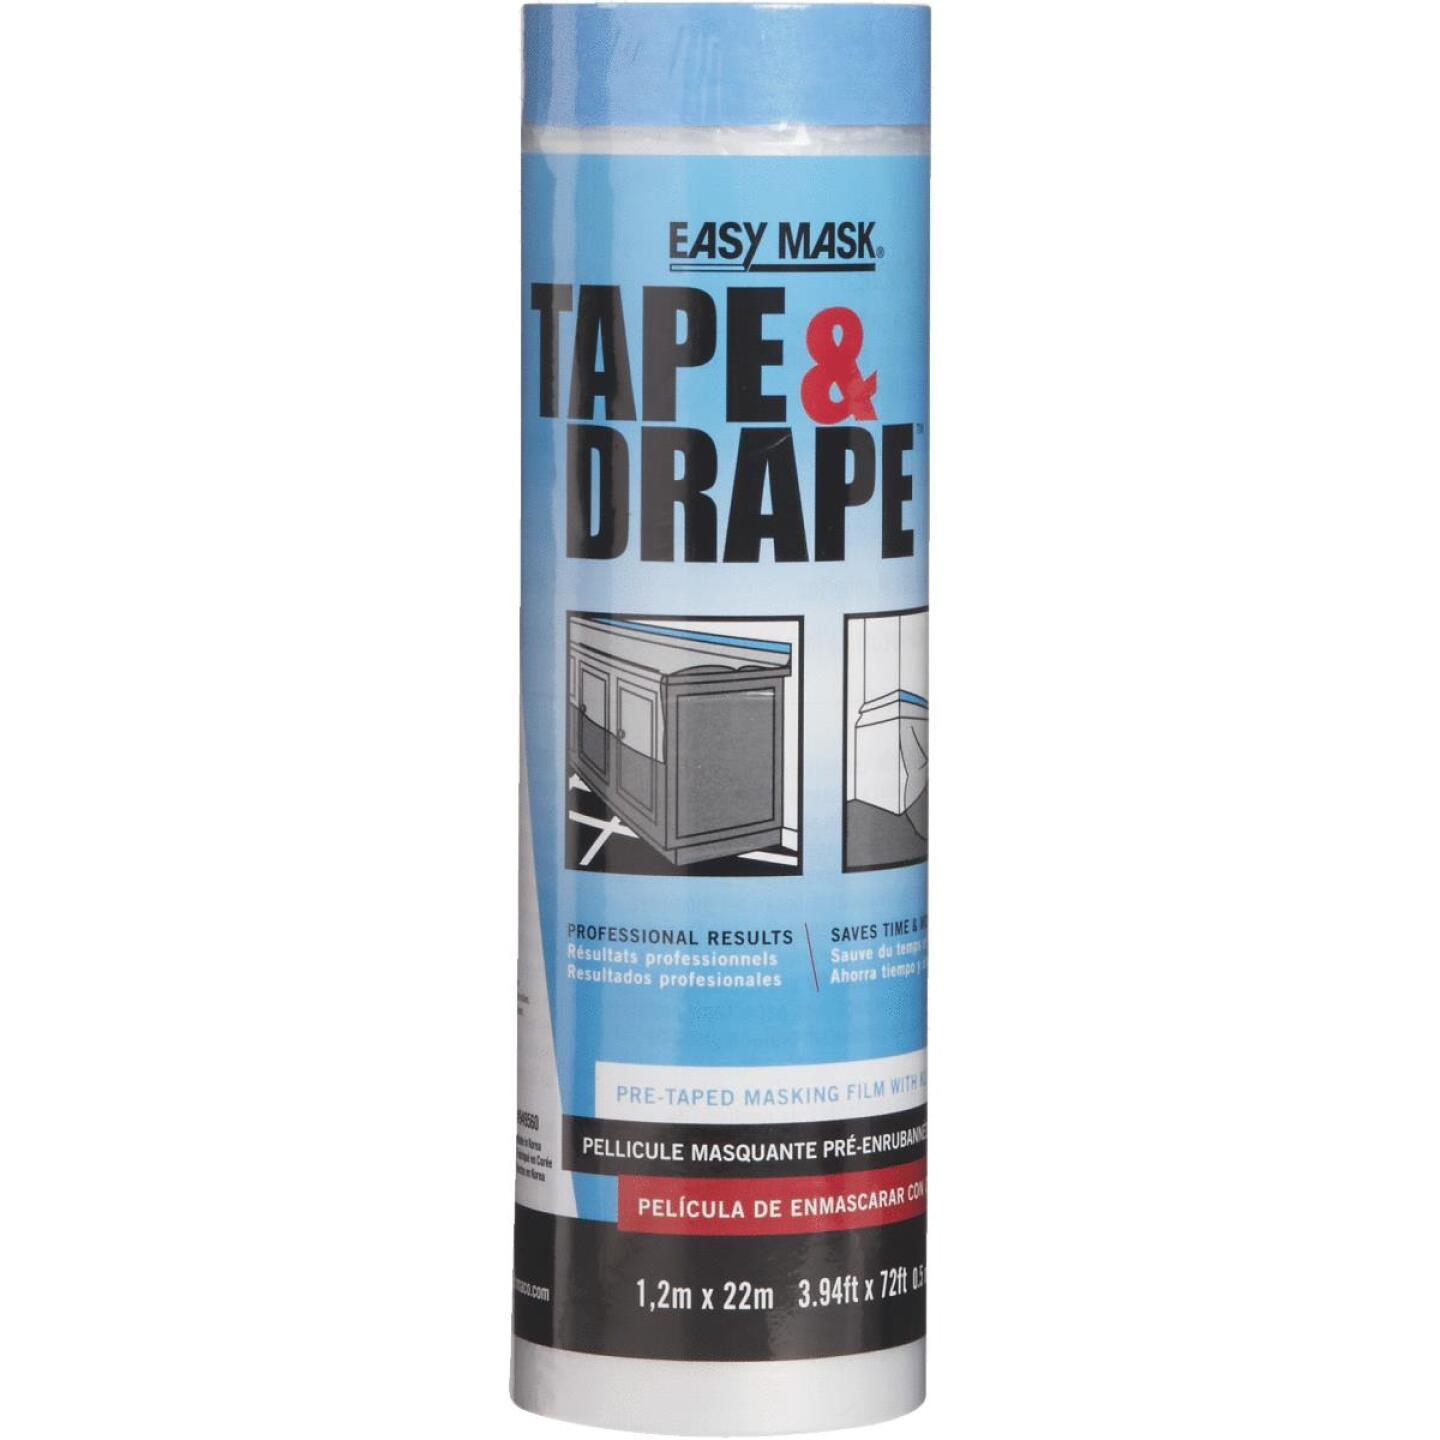 Trimaco Tape & Drape Pre-Taped Plastic 4 Ft. x 75 Ft. 1/2 mil Drop Cloth Image 1